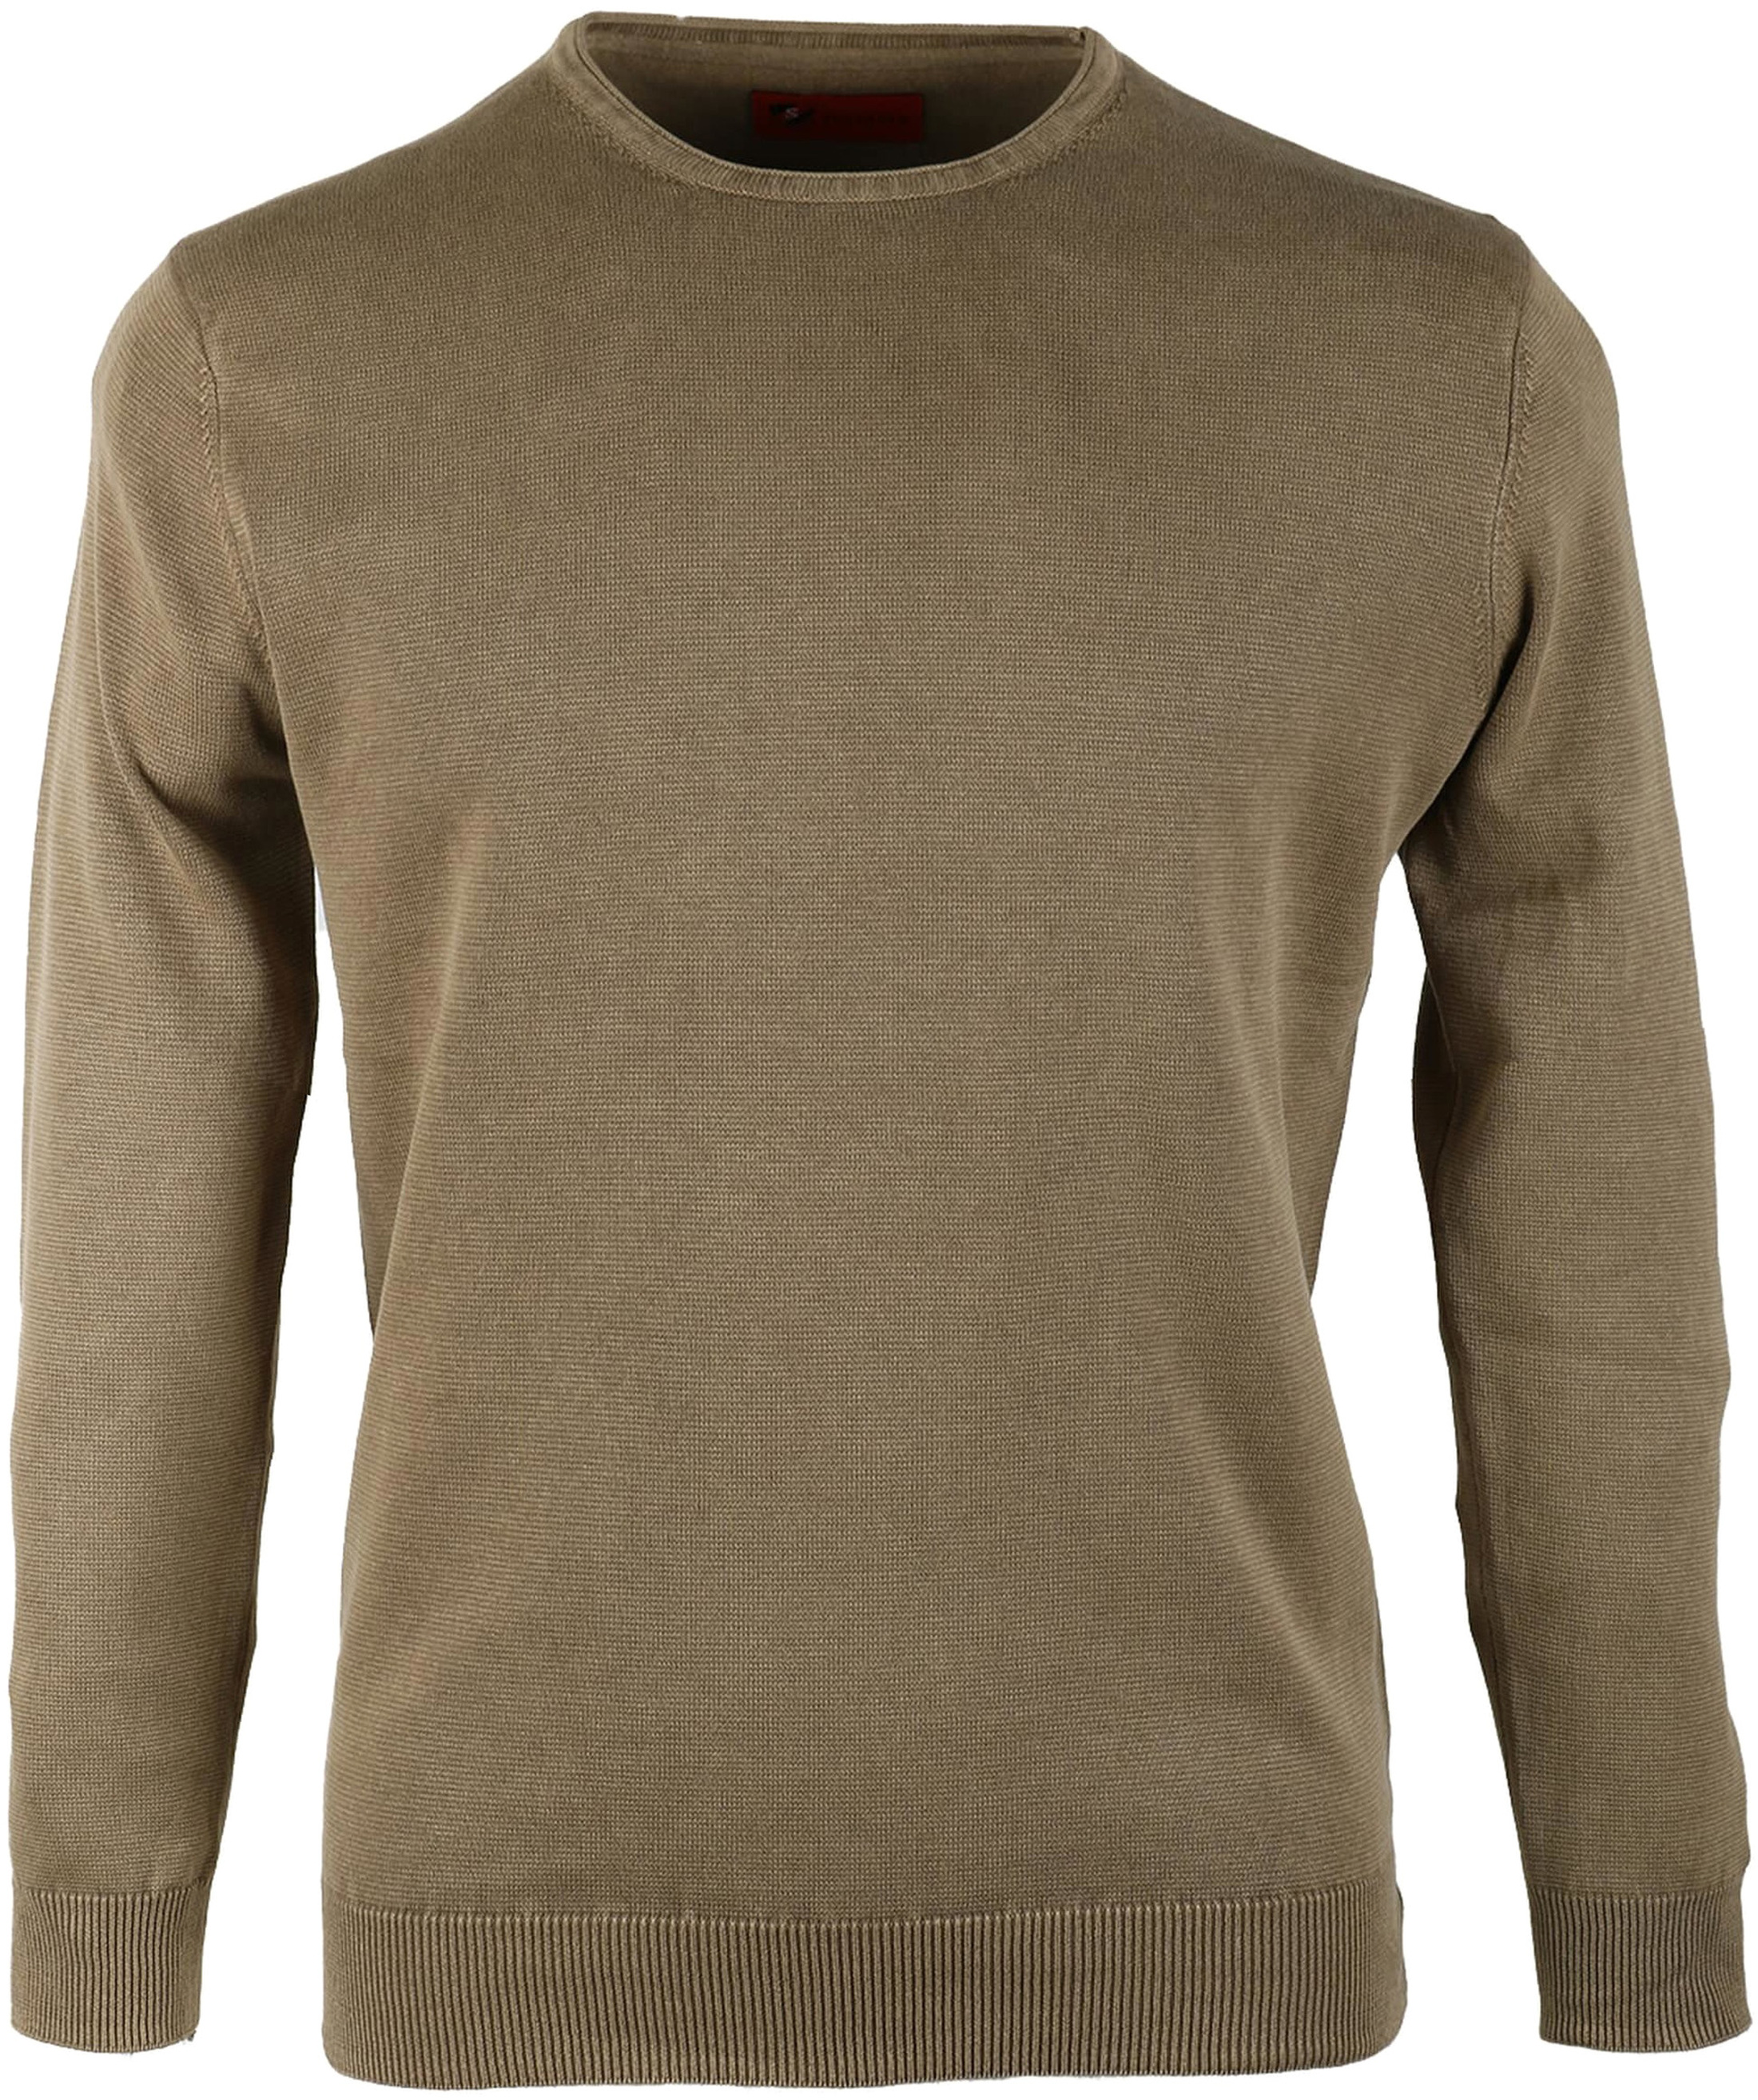 Pullover Washed Ribs Khaki foto 0